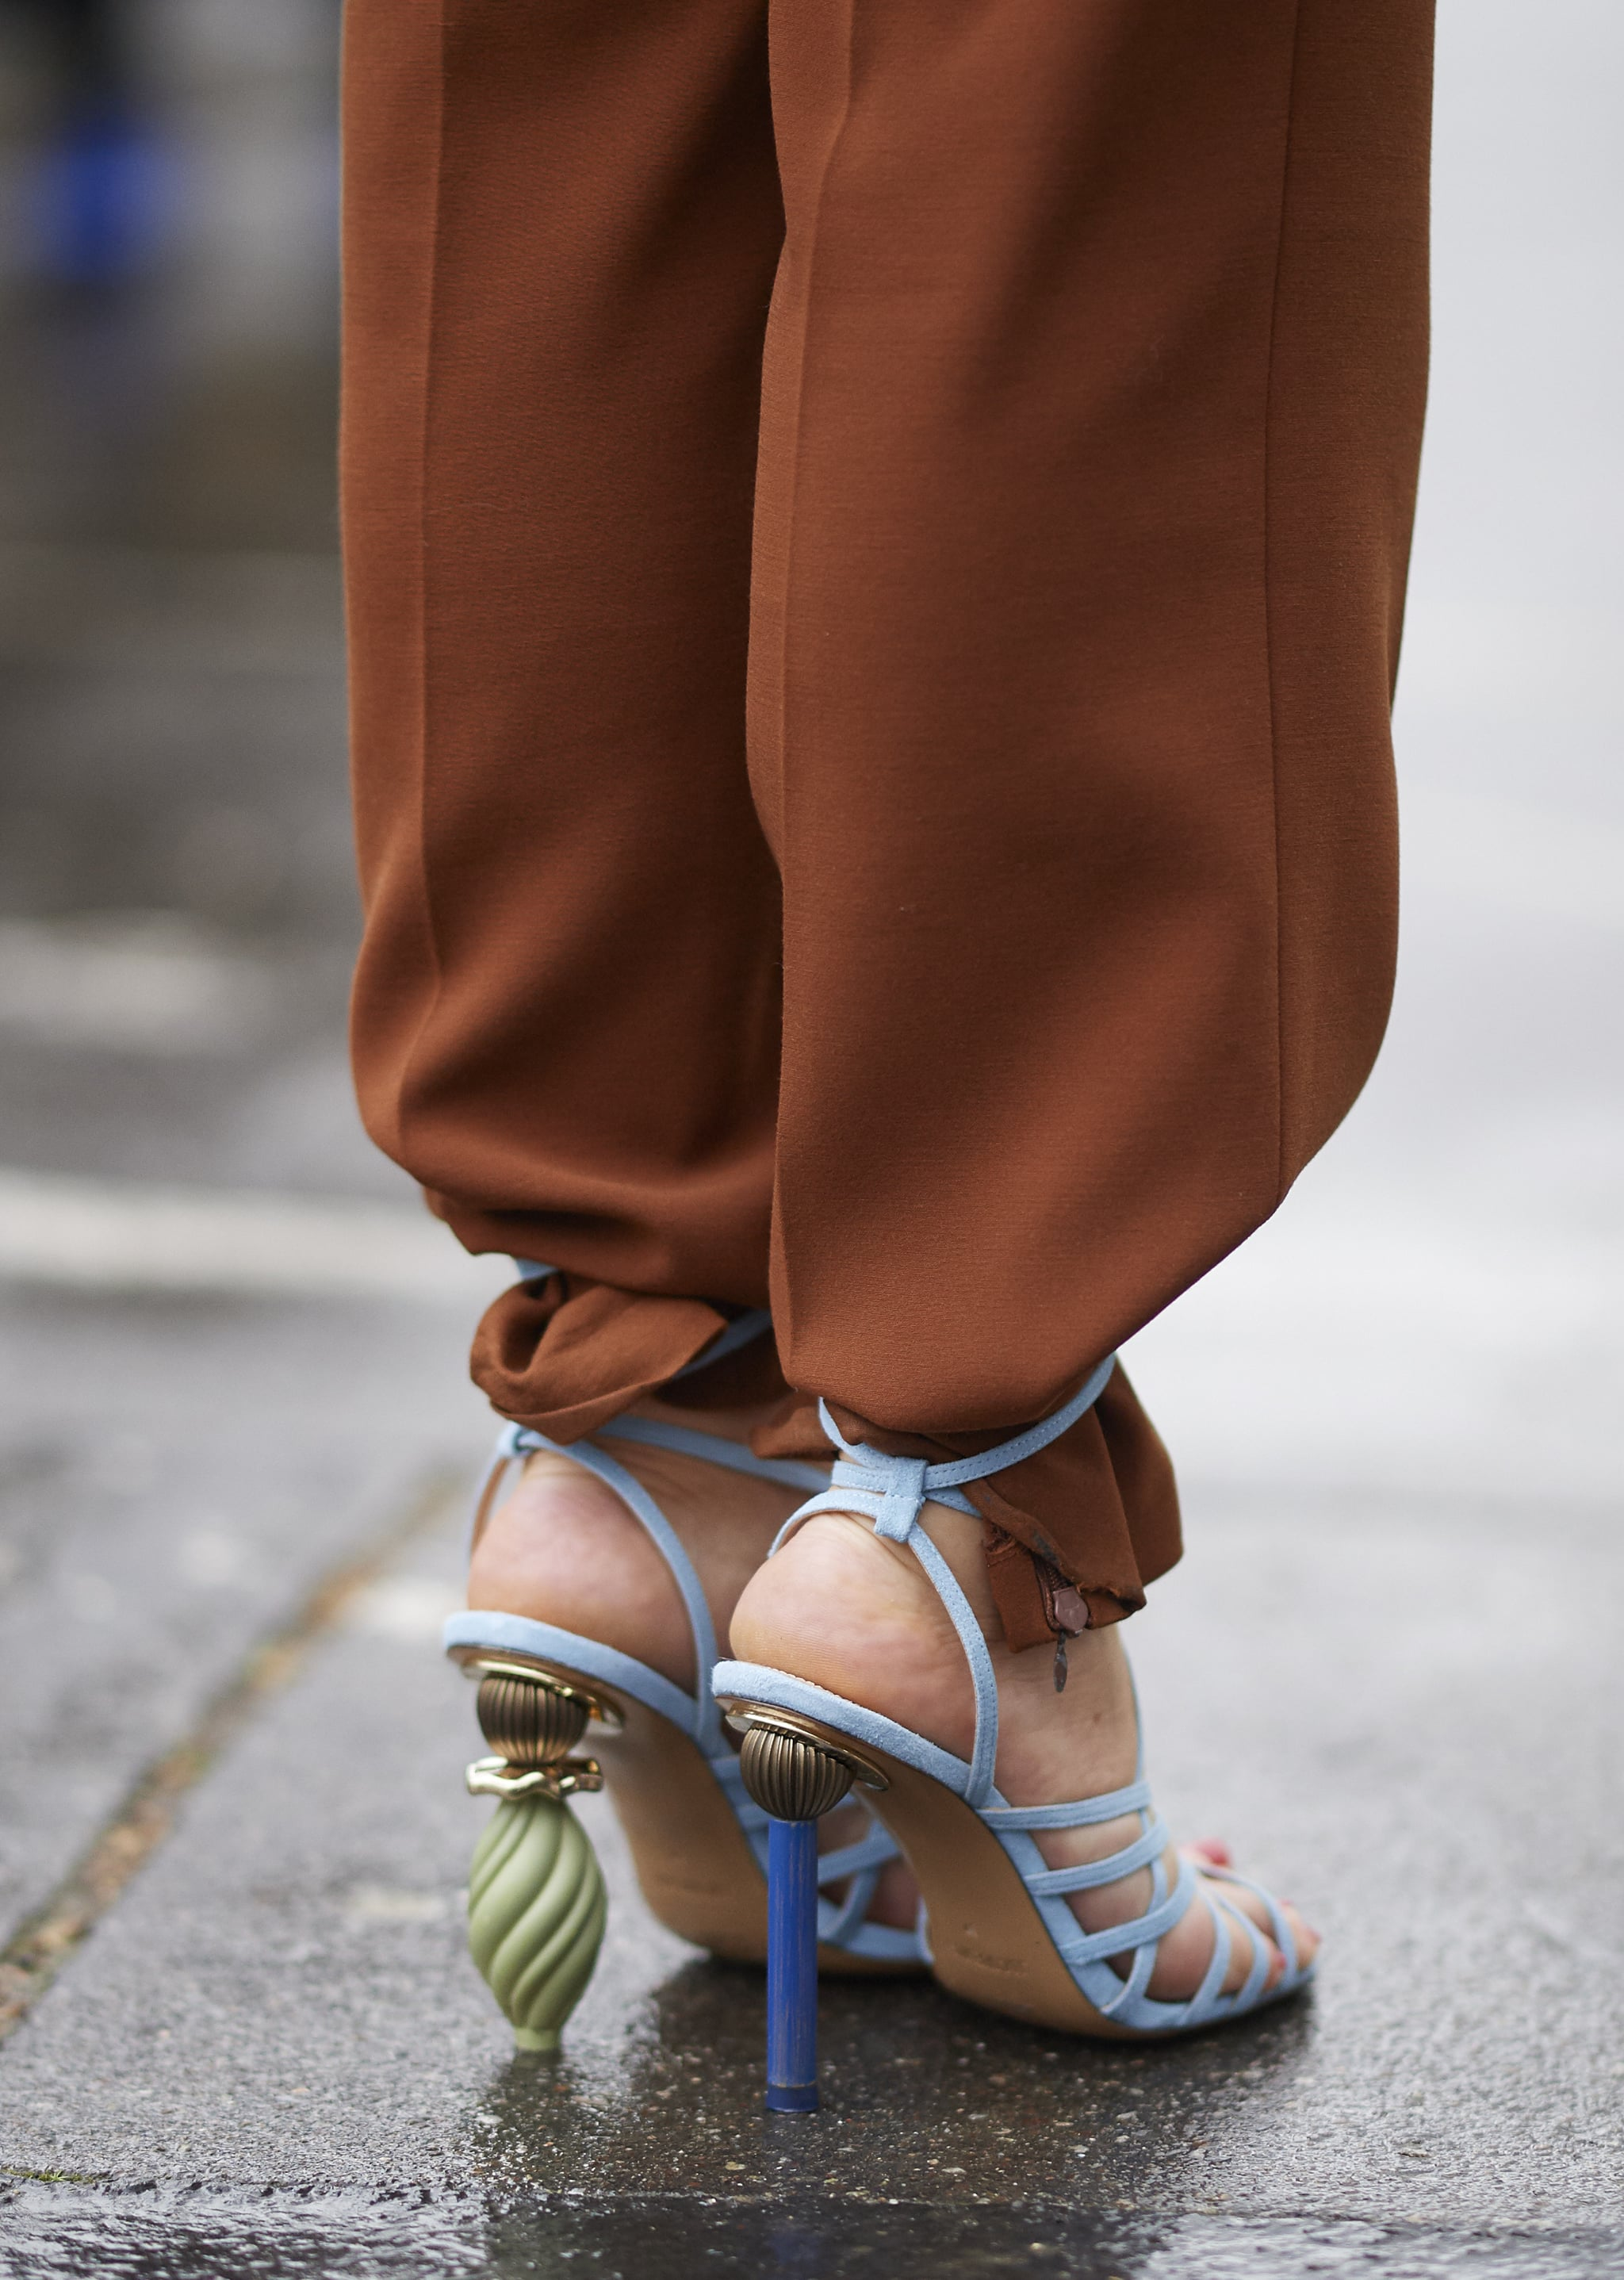 Sandals Trends For Spring and Summer